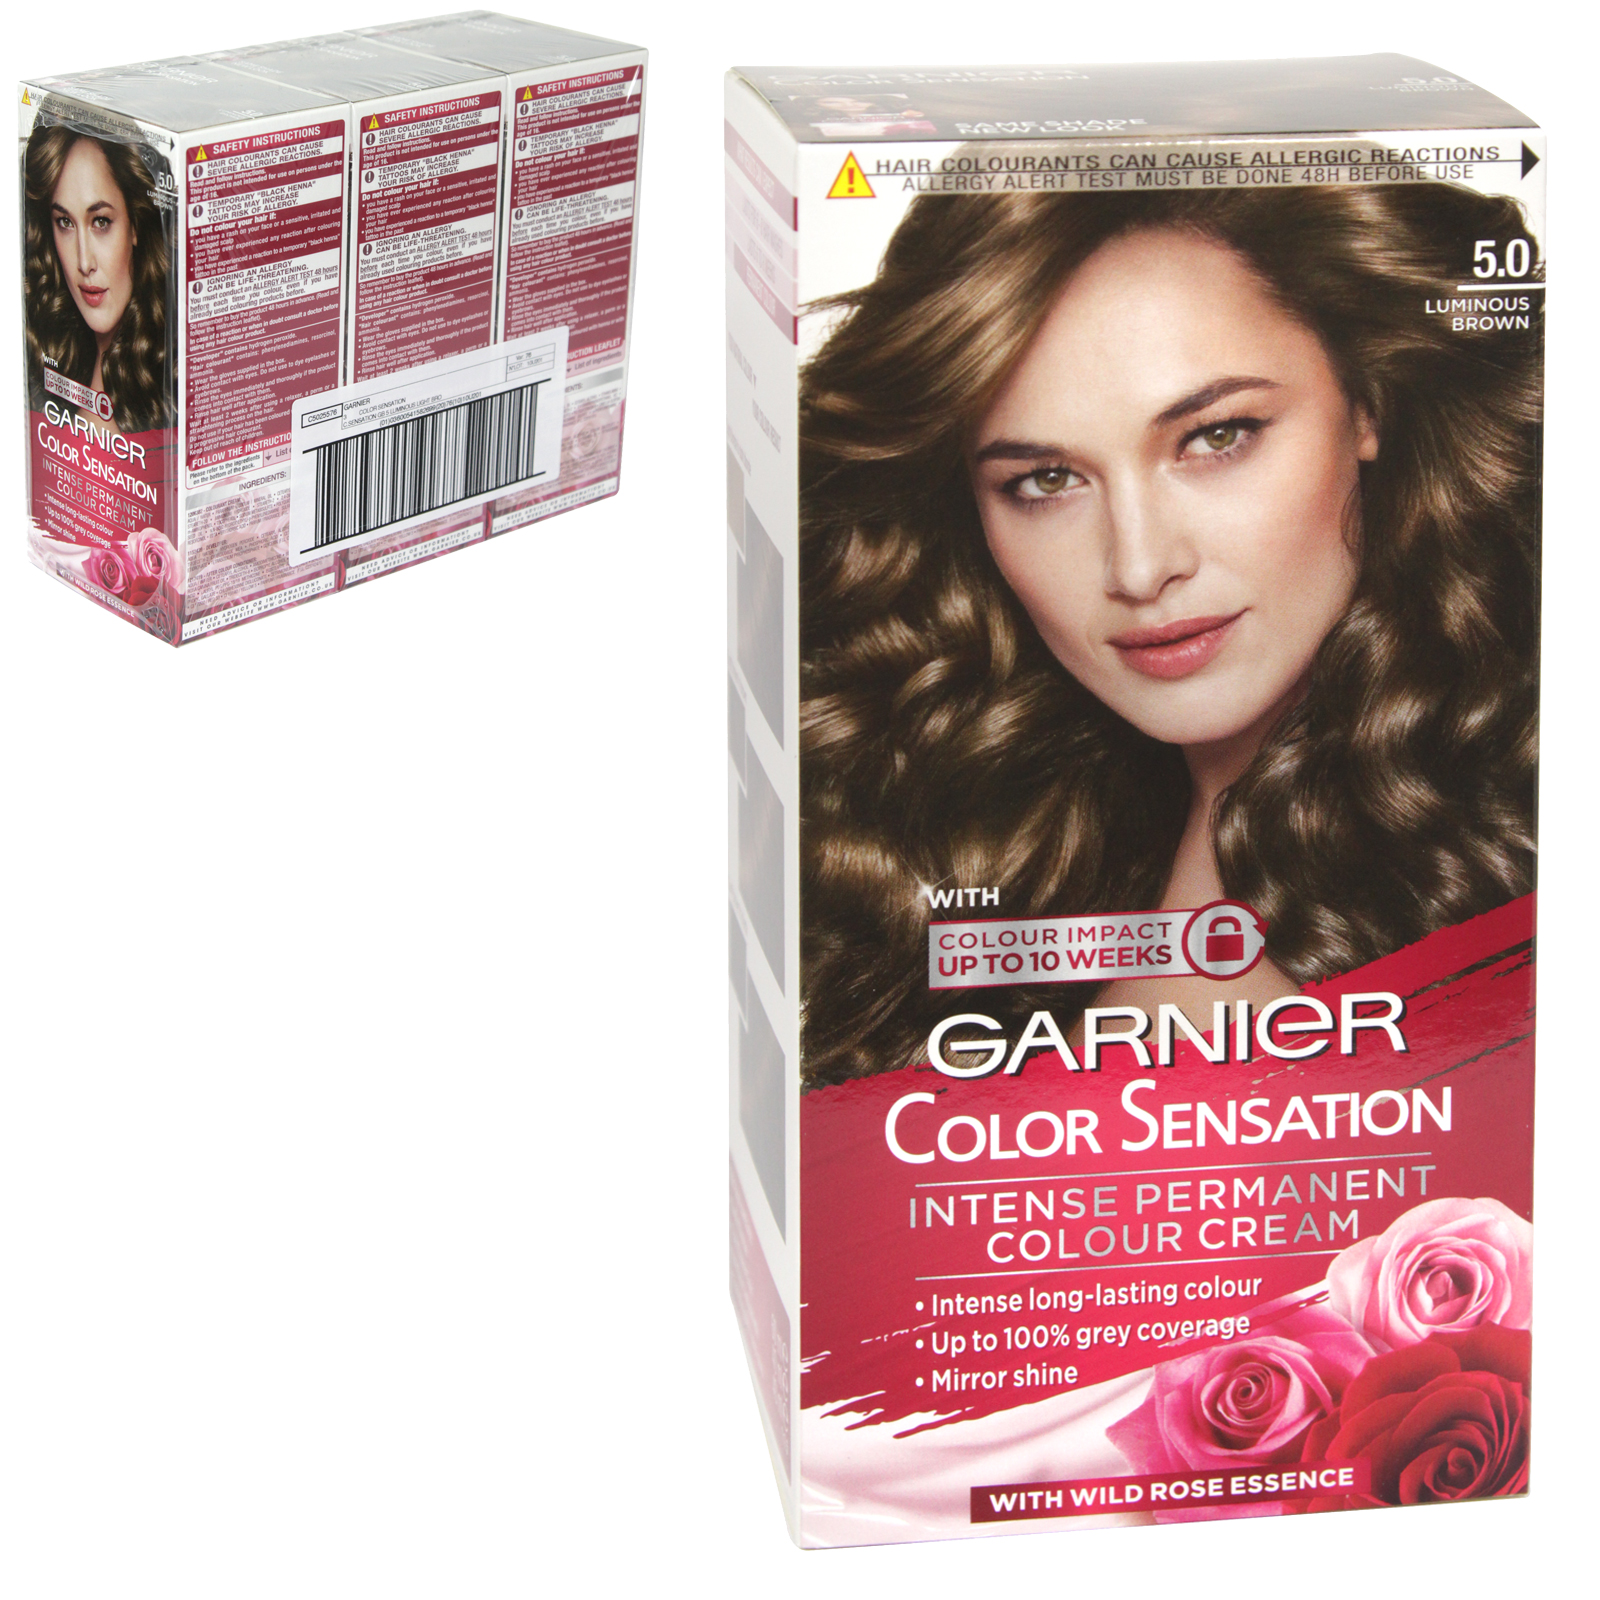 GARNIER HAIR COLOUR- LUMINOUS BROWN 5 - X3